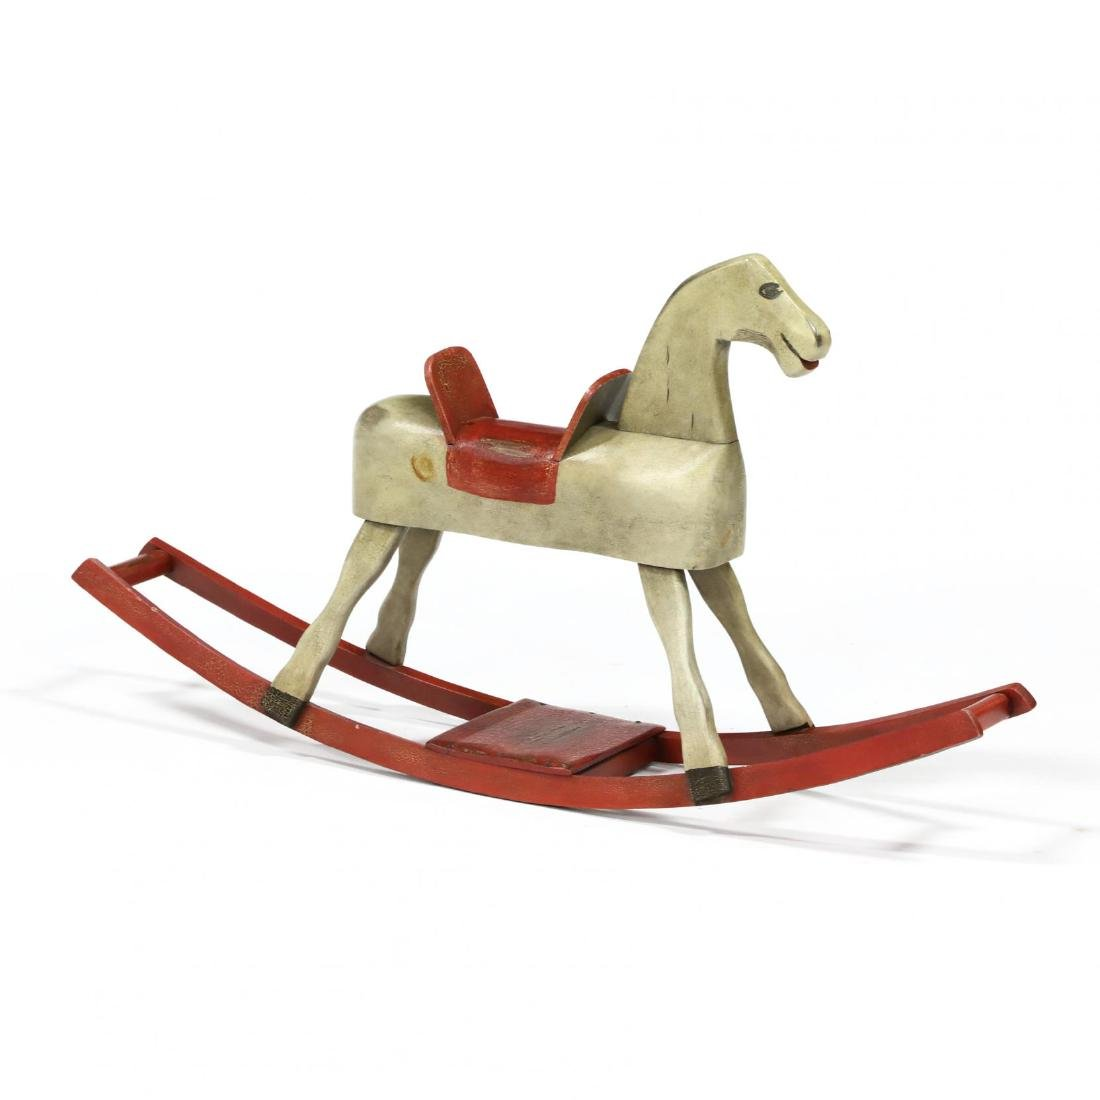 A Museum Reproduction Rocking Horse by Alan A. Woods